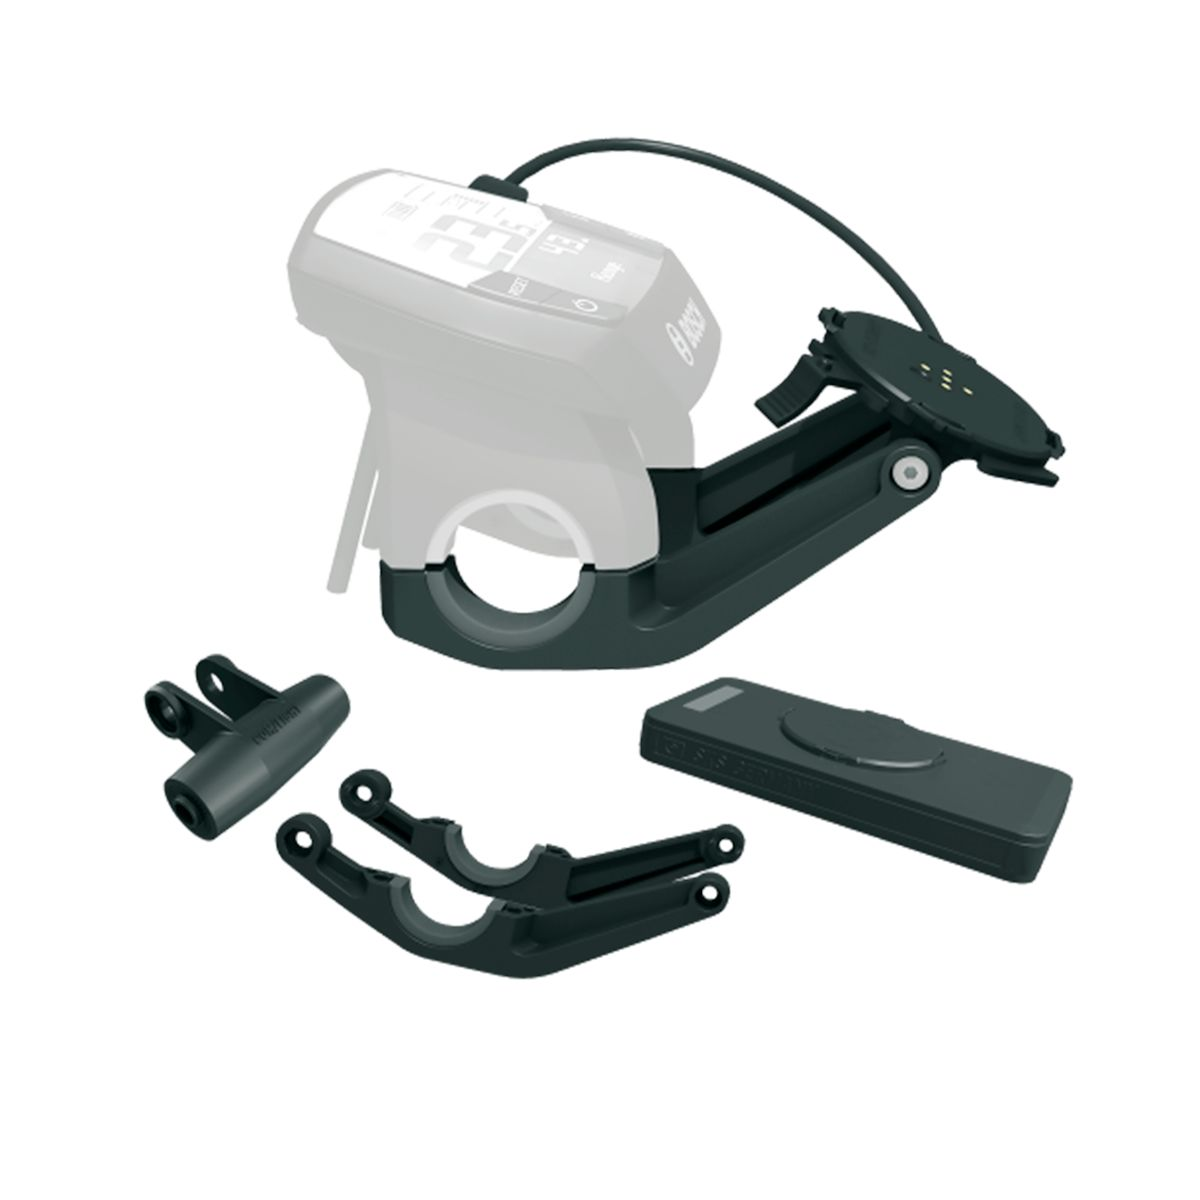 SKS Germany COMPIT/E+ Smartphone Holder for Bosch Intuvia/Nyon Incl. +COM/UNIT Powerbank | Computer Battery and Charger